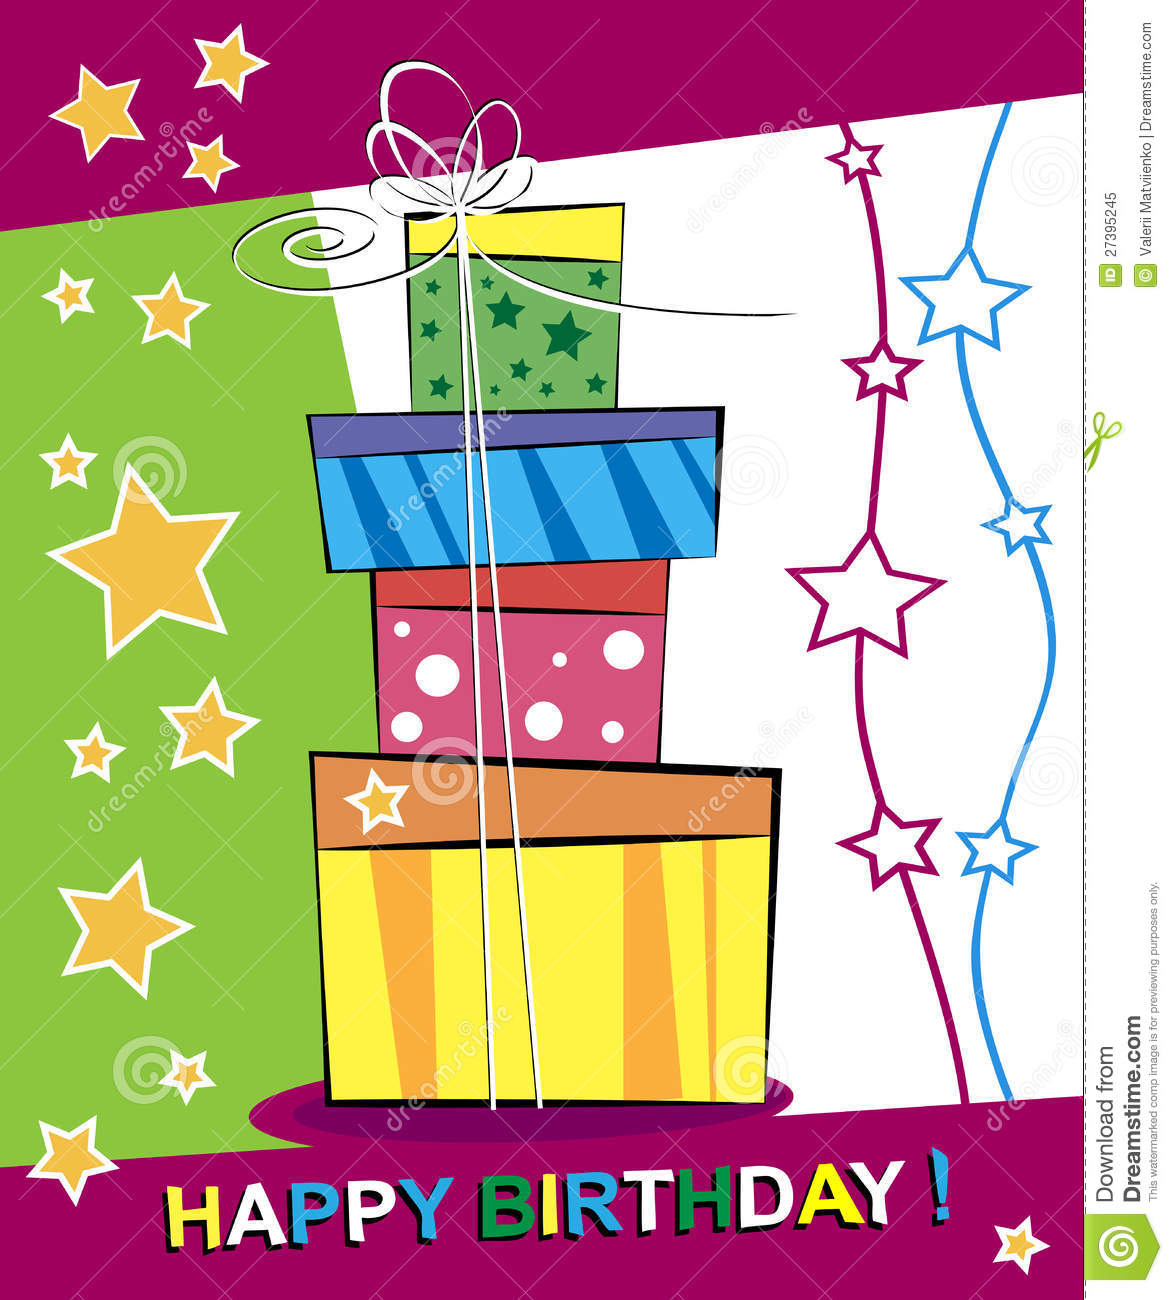 Happy Birthday Card Designs gangcraftnet – Happy Birthday Card Design Free